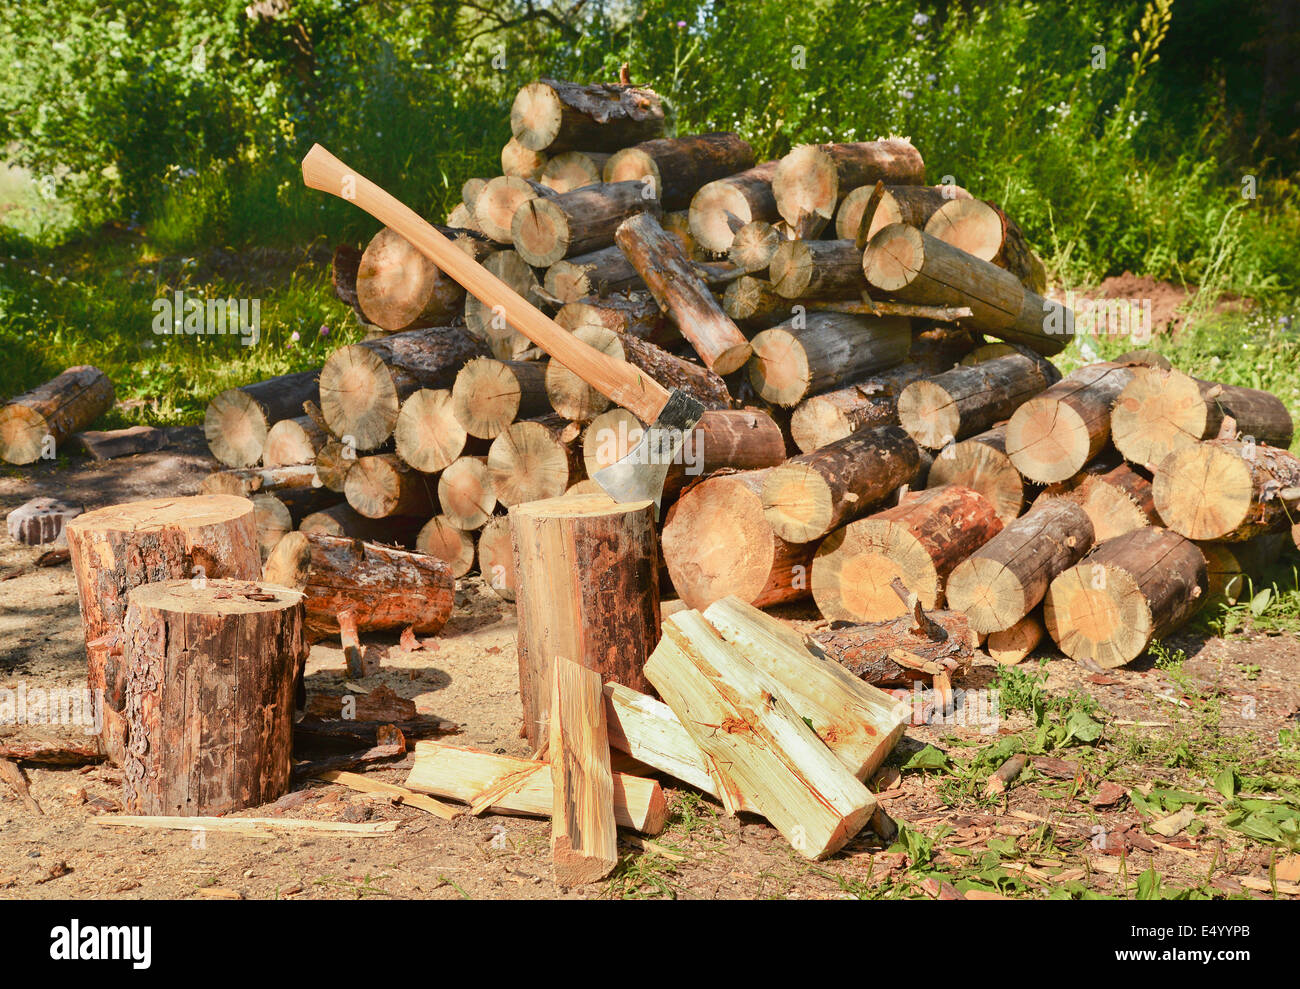 Pile of firewood and axe - Stock Image